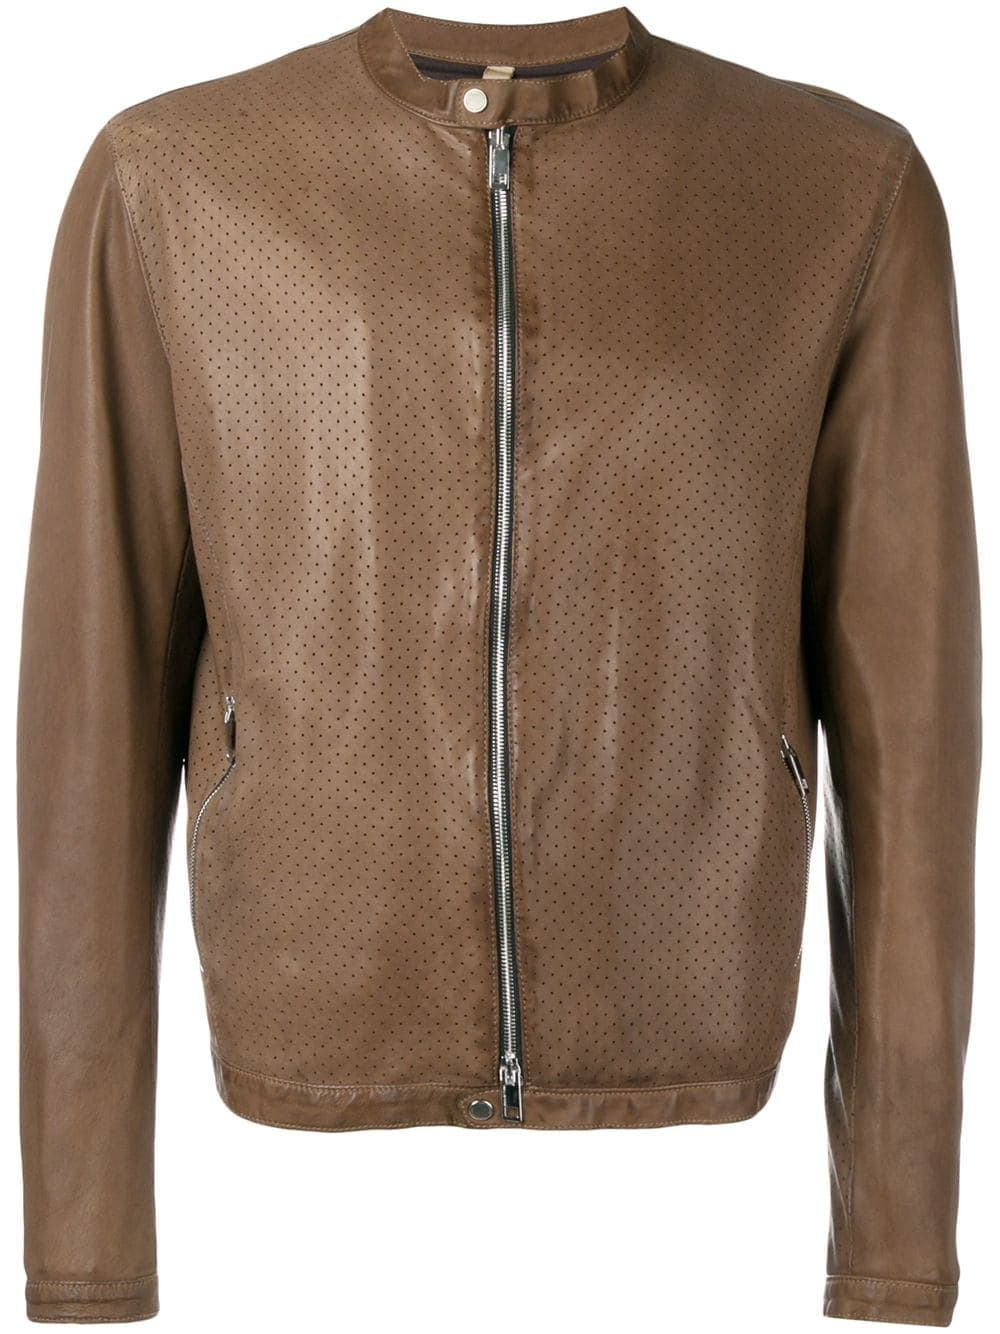 Tagliatore Perforated Bomber Jacket (farfetch)